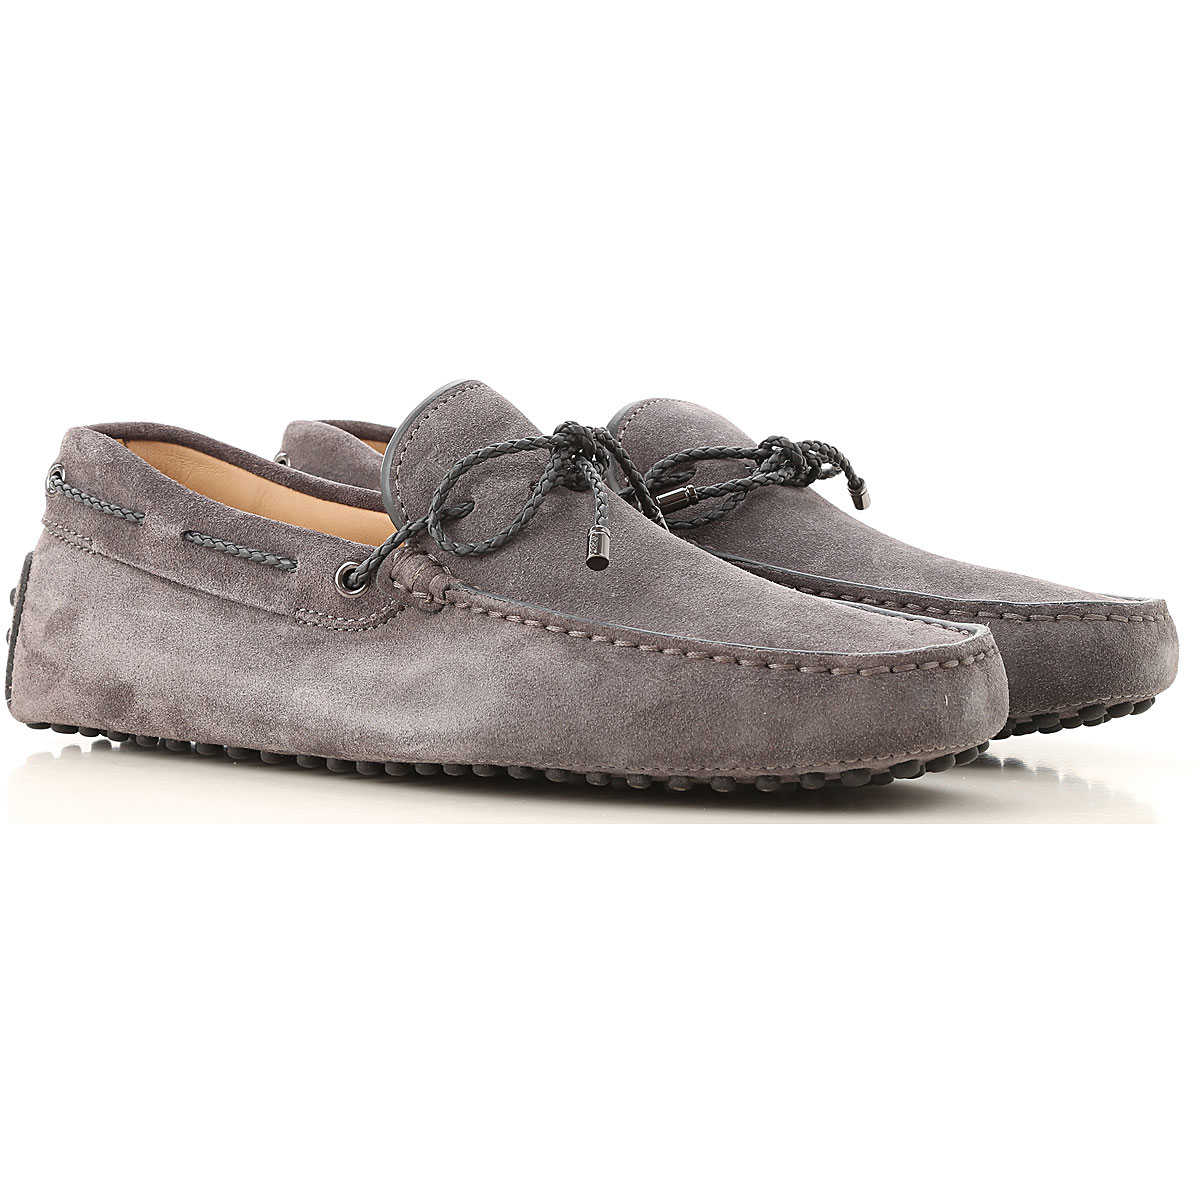 Tods Loafers for Men On Sale Grey SE - GOOFASH